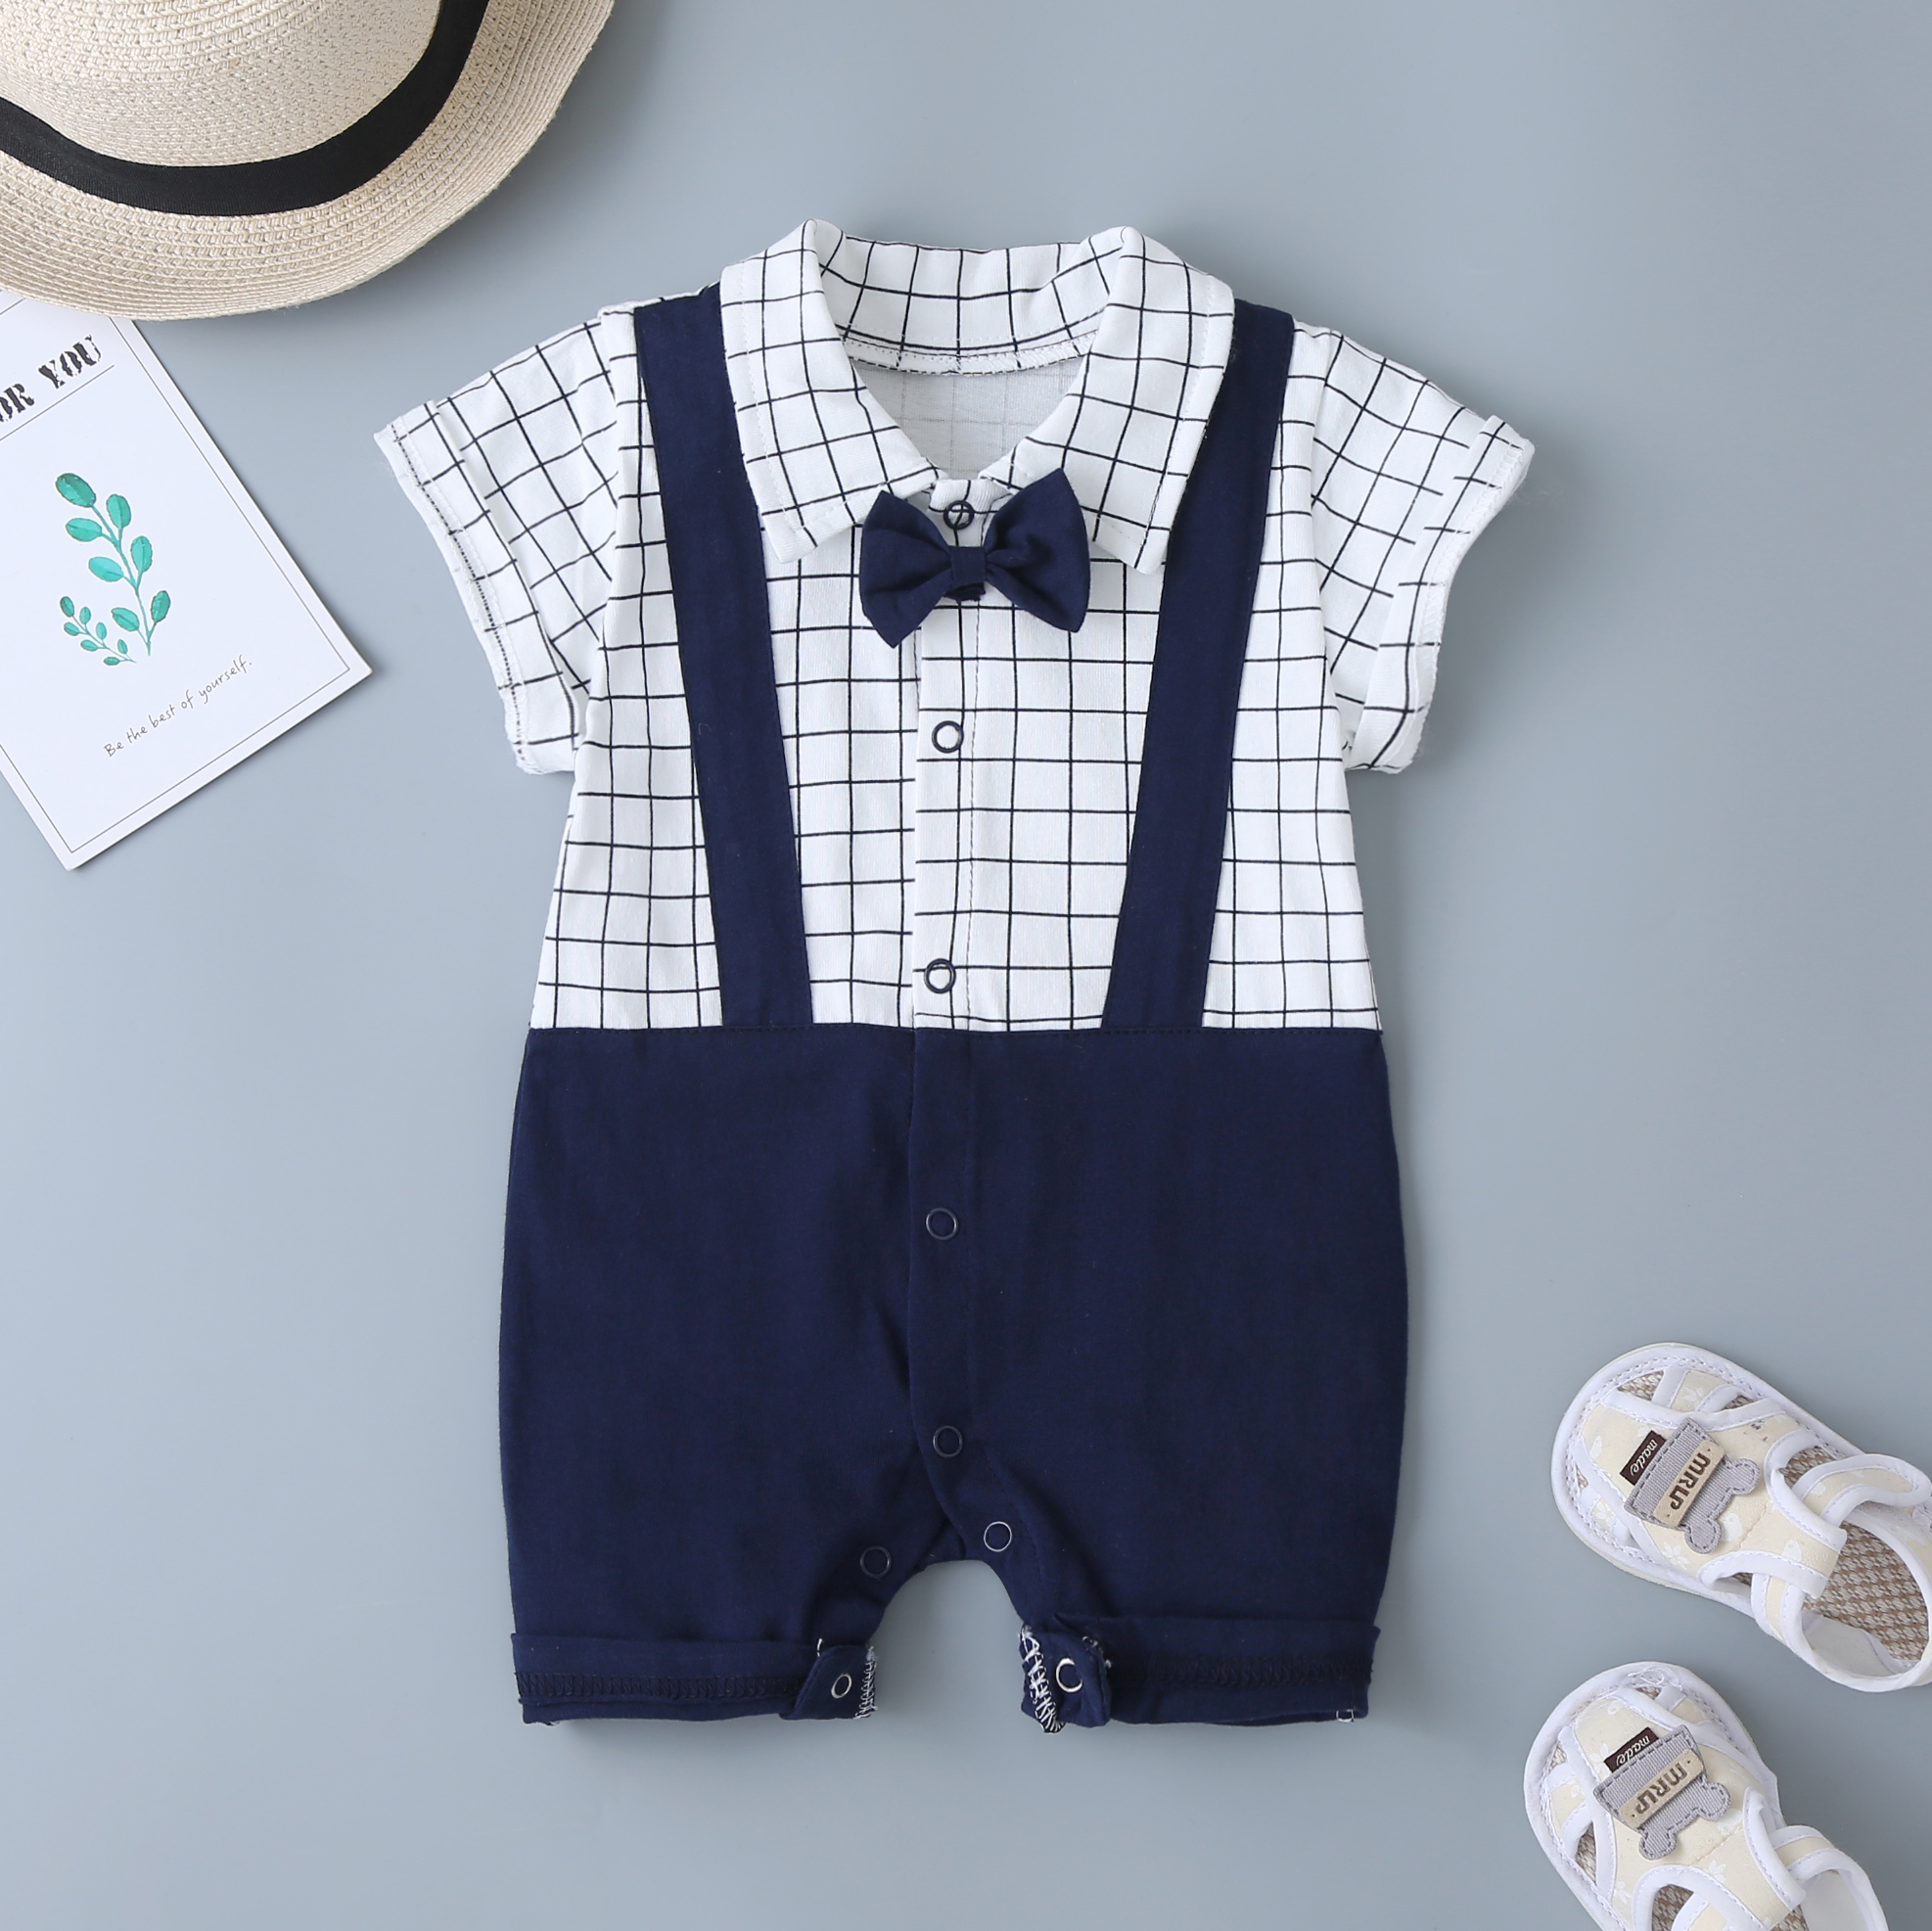 Summer Short Sleeve High Quality Baby Romper – White & Blue